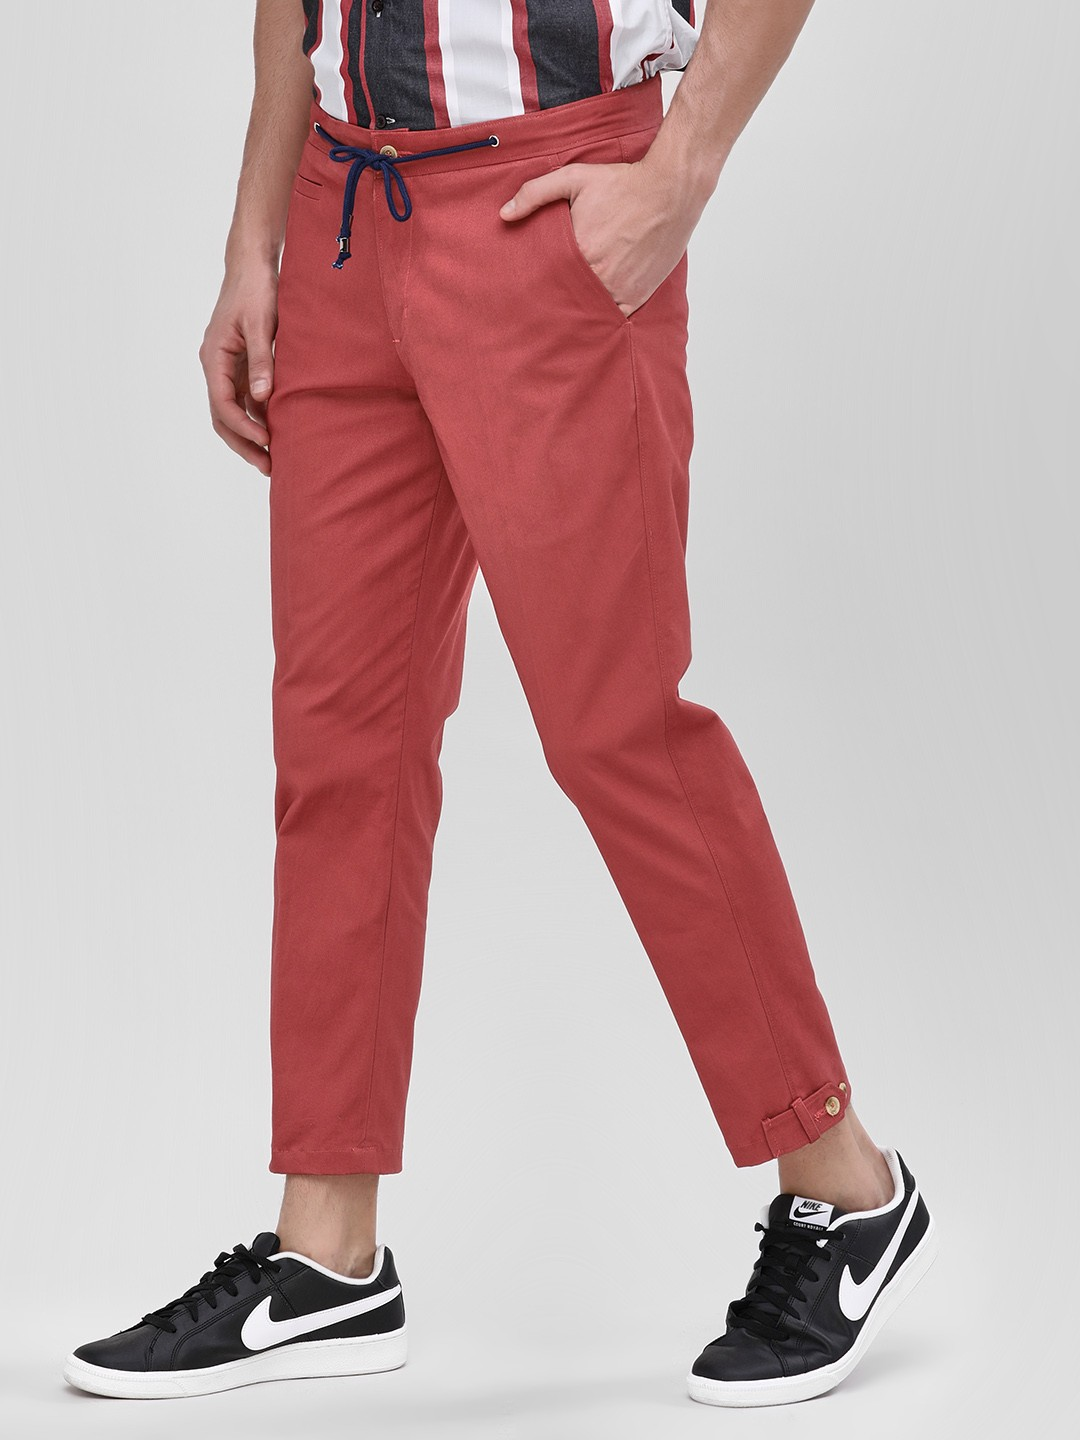 Mr Button Red Slim Trousers With Drawcord 1